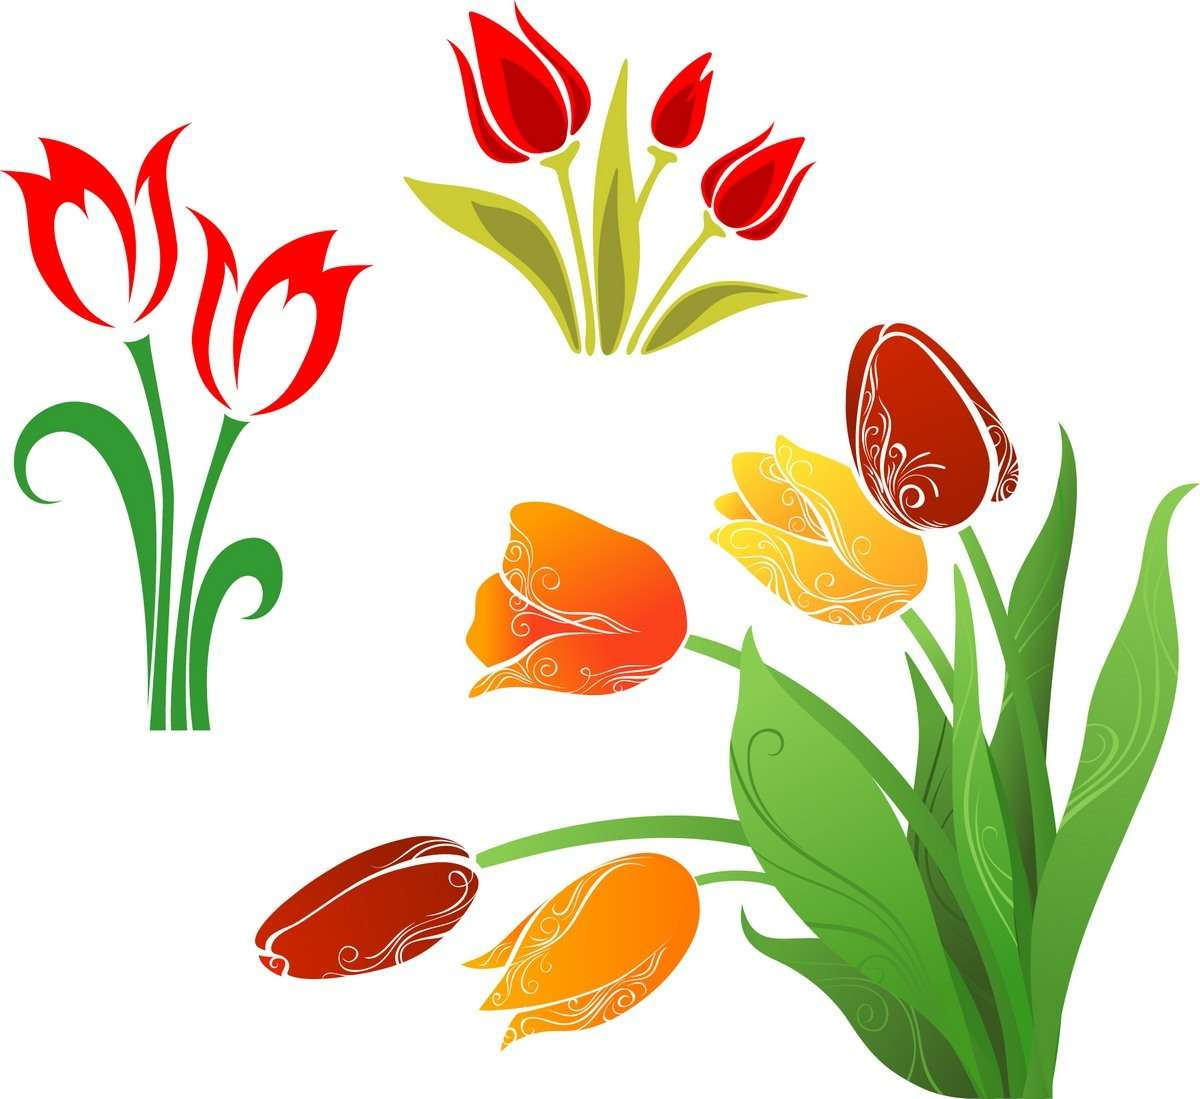 Flower, Tulip 01 png